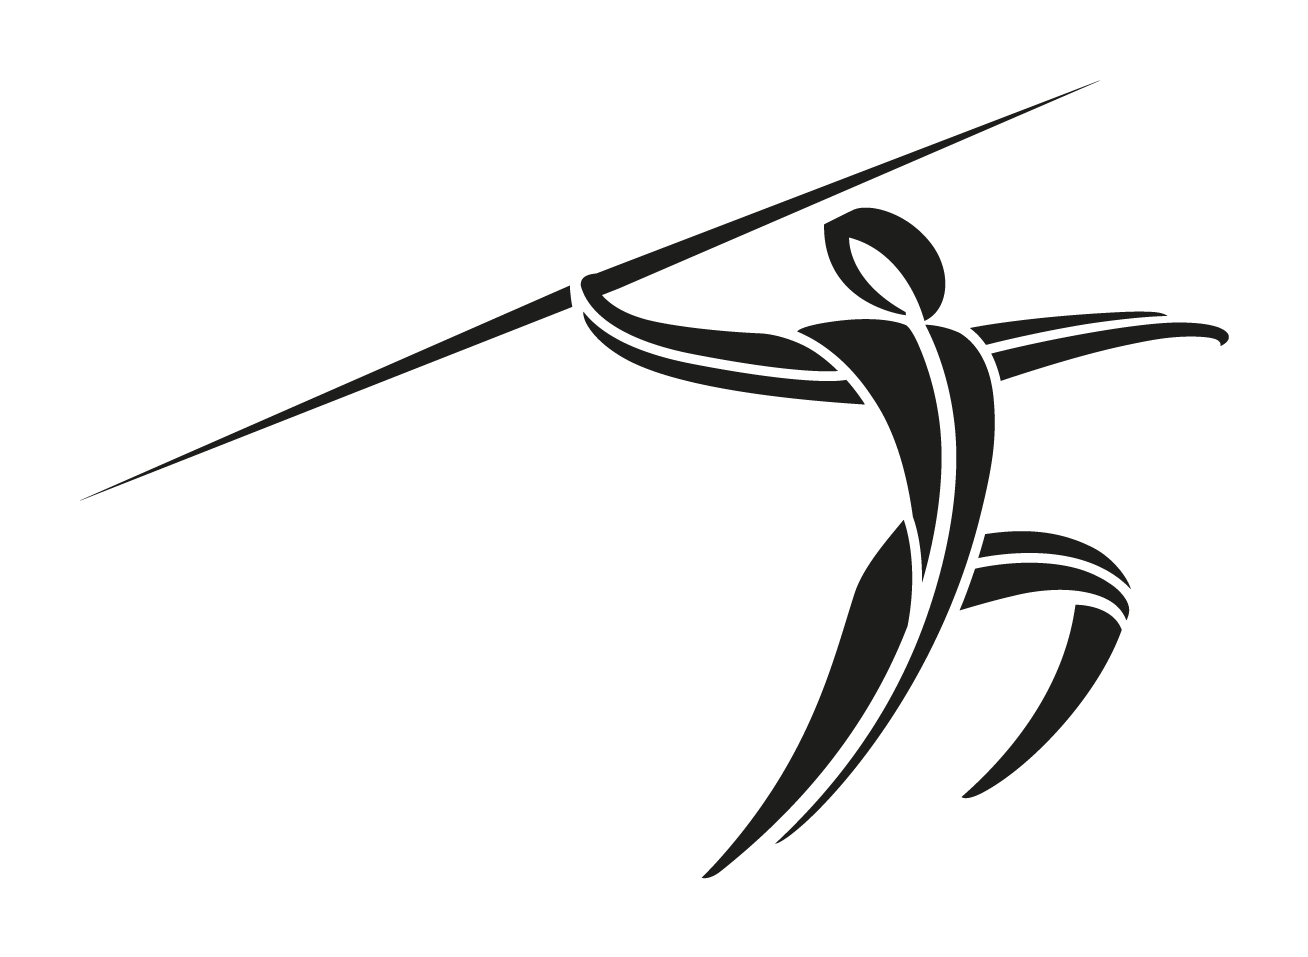 Track clipart pole vault. Drawing at getdrawings com